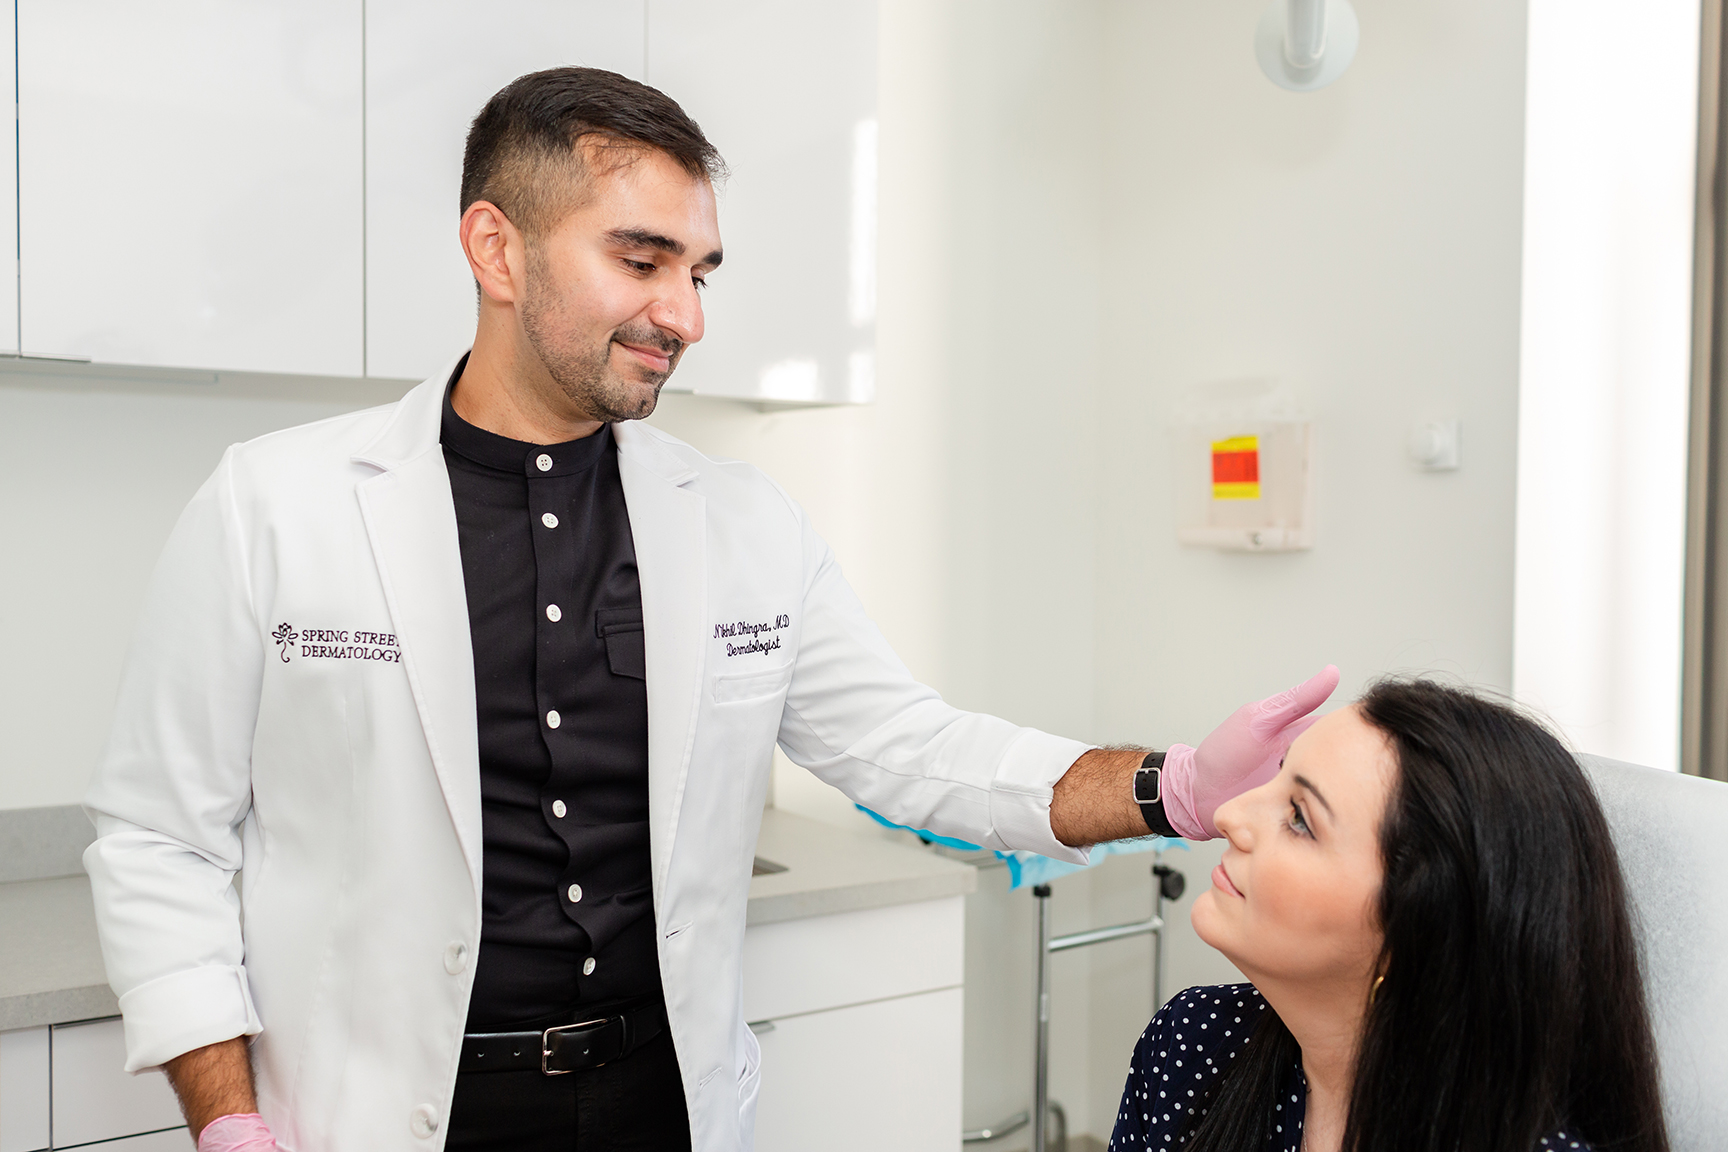 Nikhil Dhingra MD checking his patient at Spring Street Dermatology in NYC, NY.